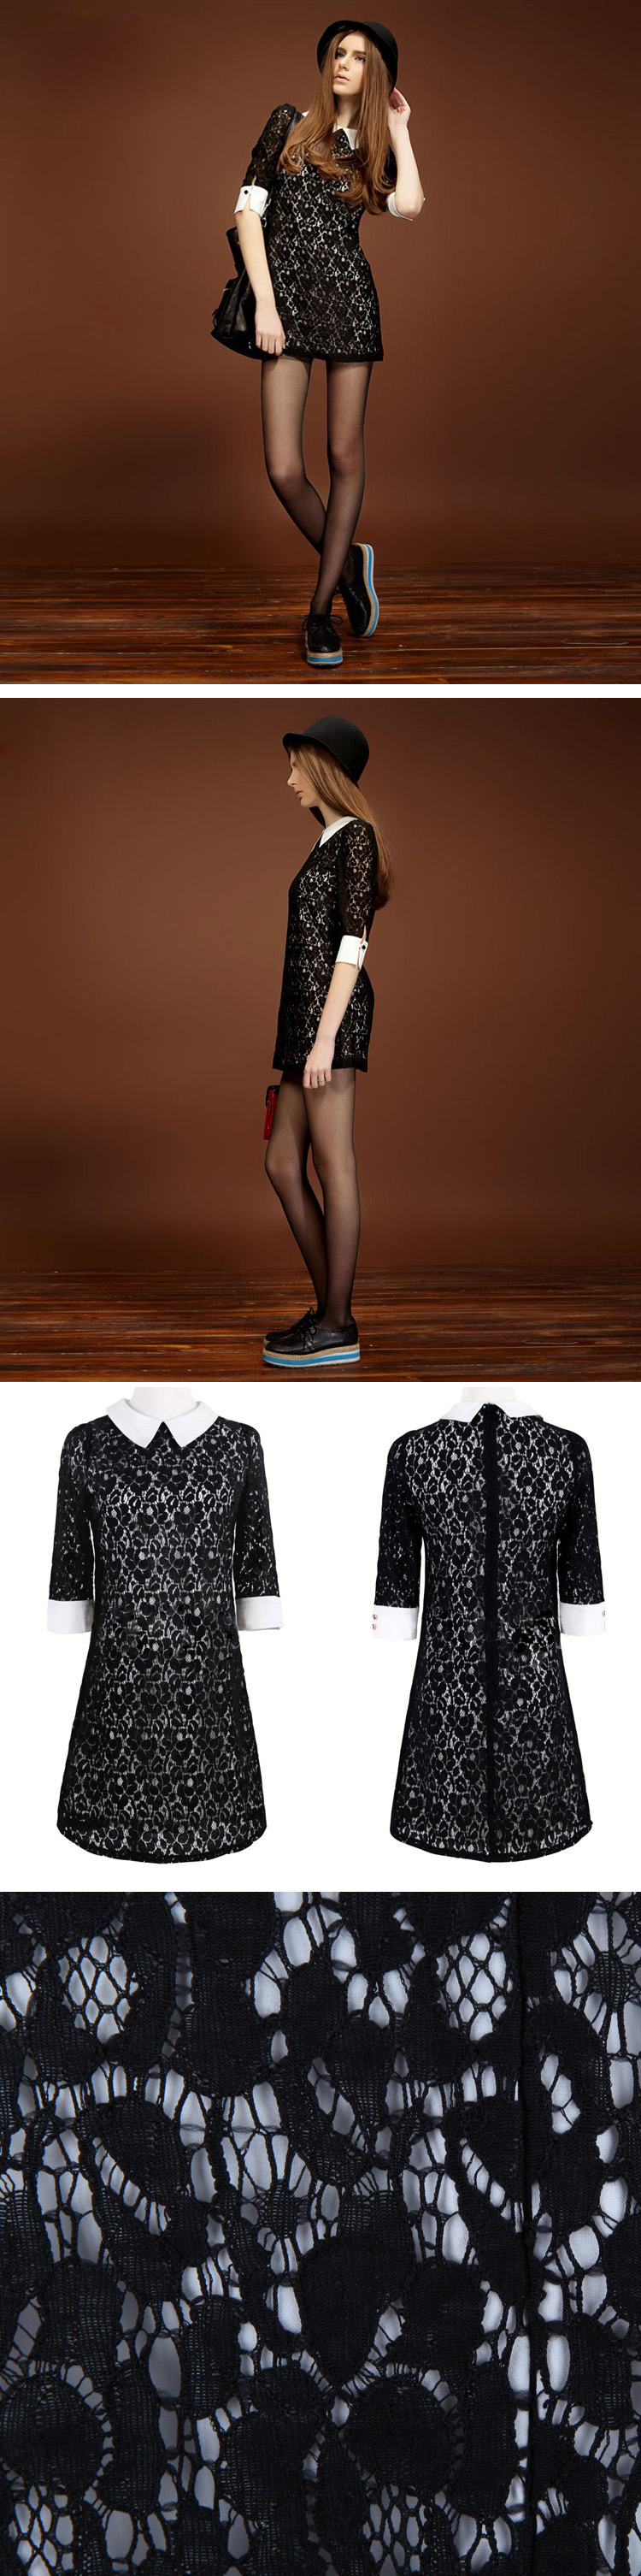 Retro Court Black Lace Hollow Dress$52